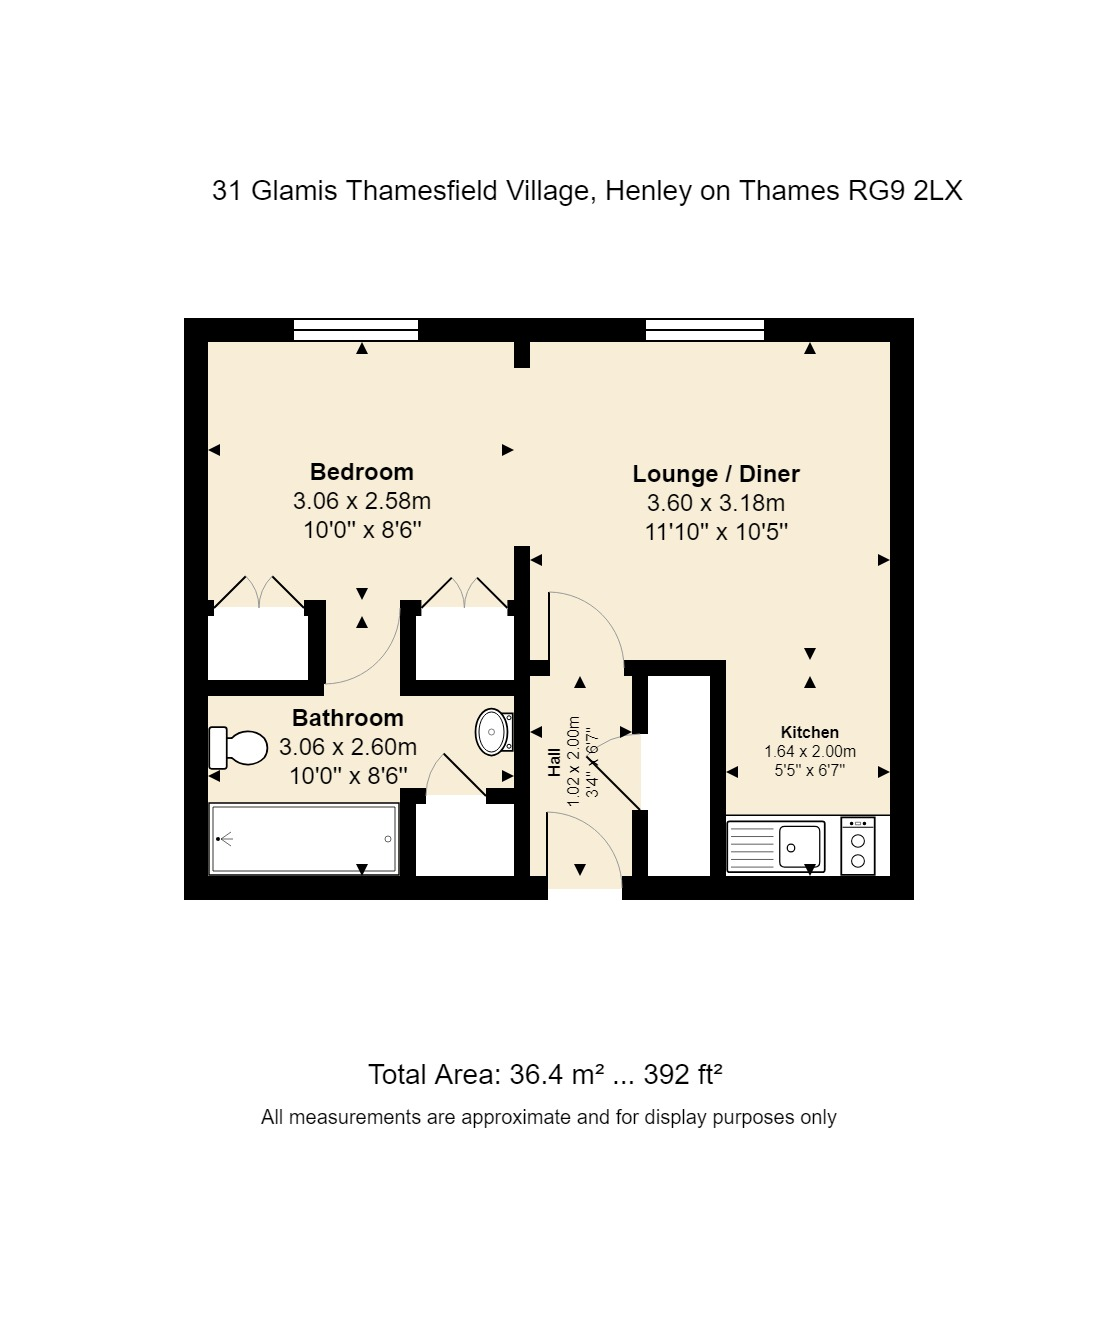 31 Glamis Floorplan